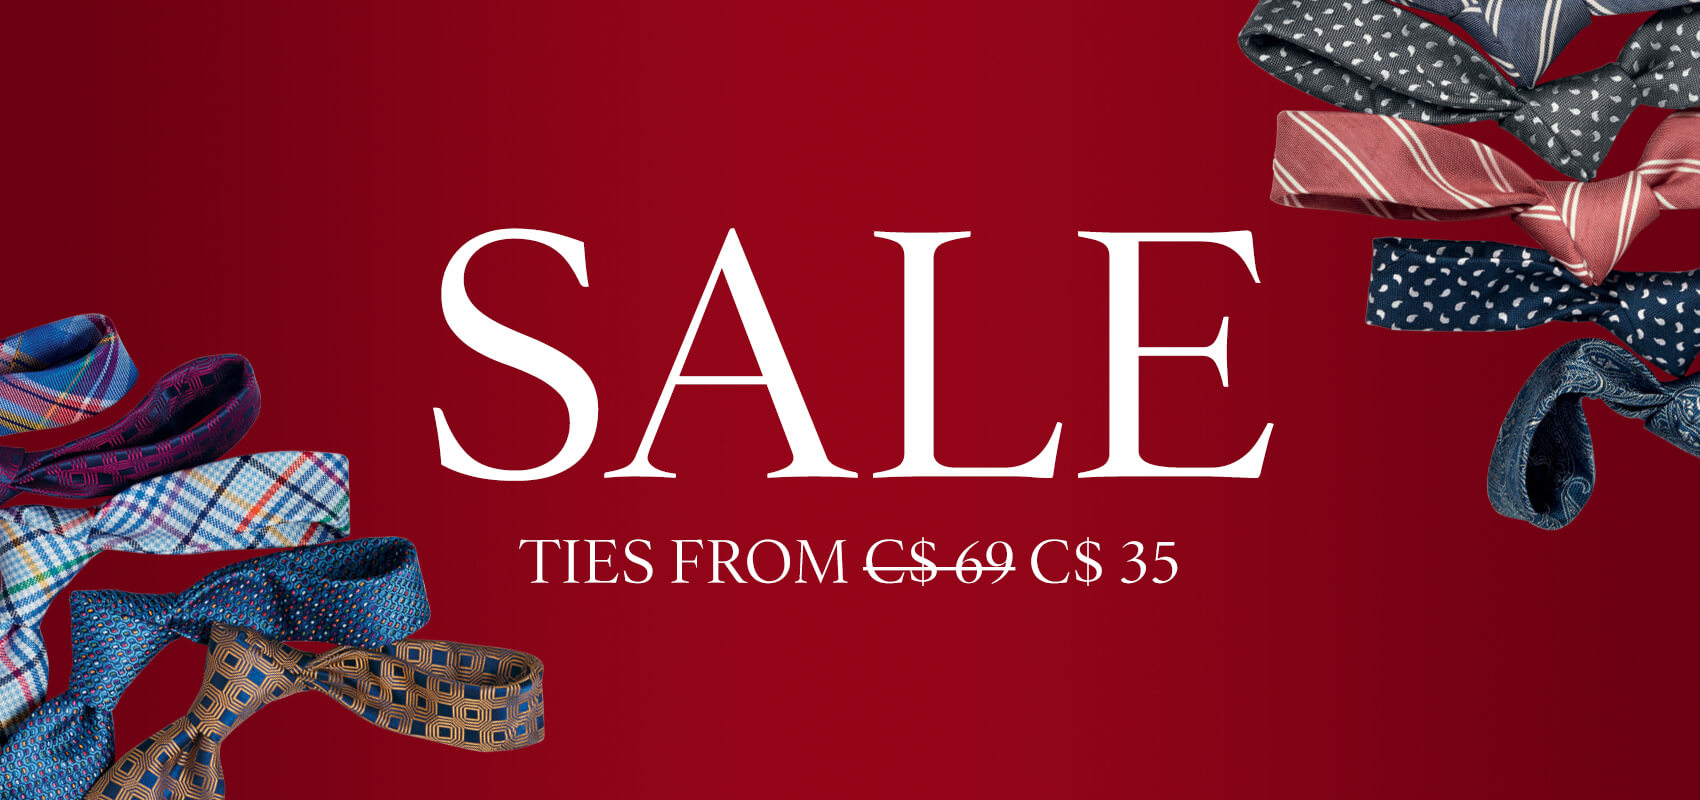 Sale ties from $35